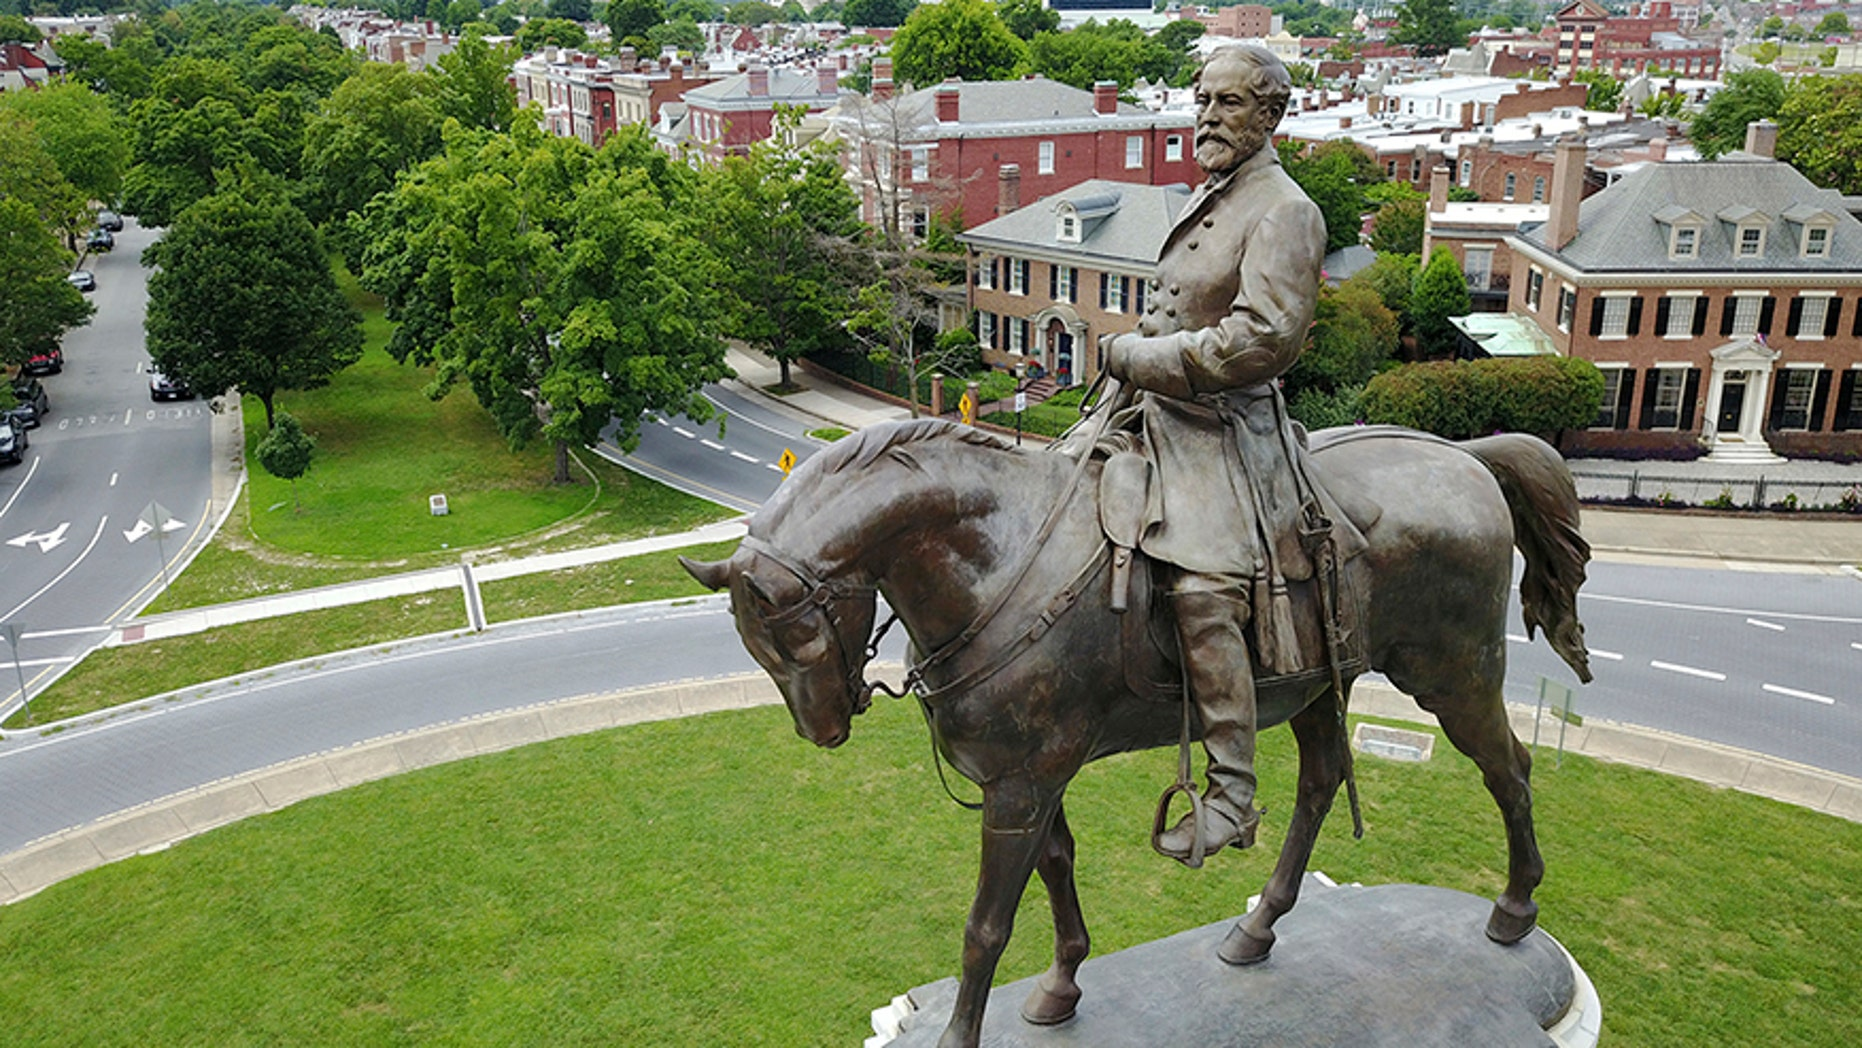 The statue of Confederate Gen. Robert E. Lee that stands in the middle of a traffic circle on Monument Avenue in Richmond, Va.